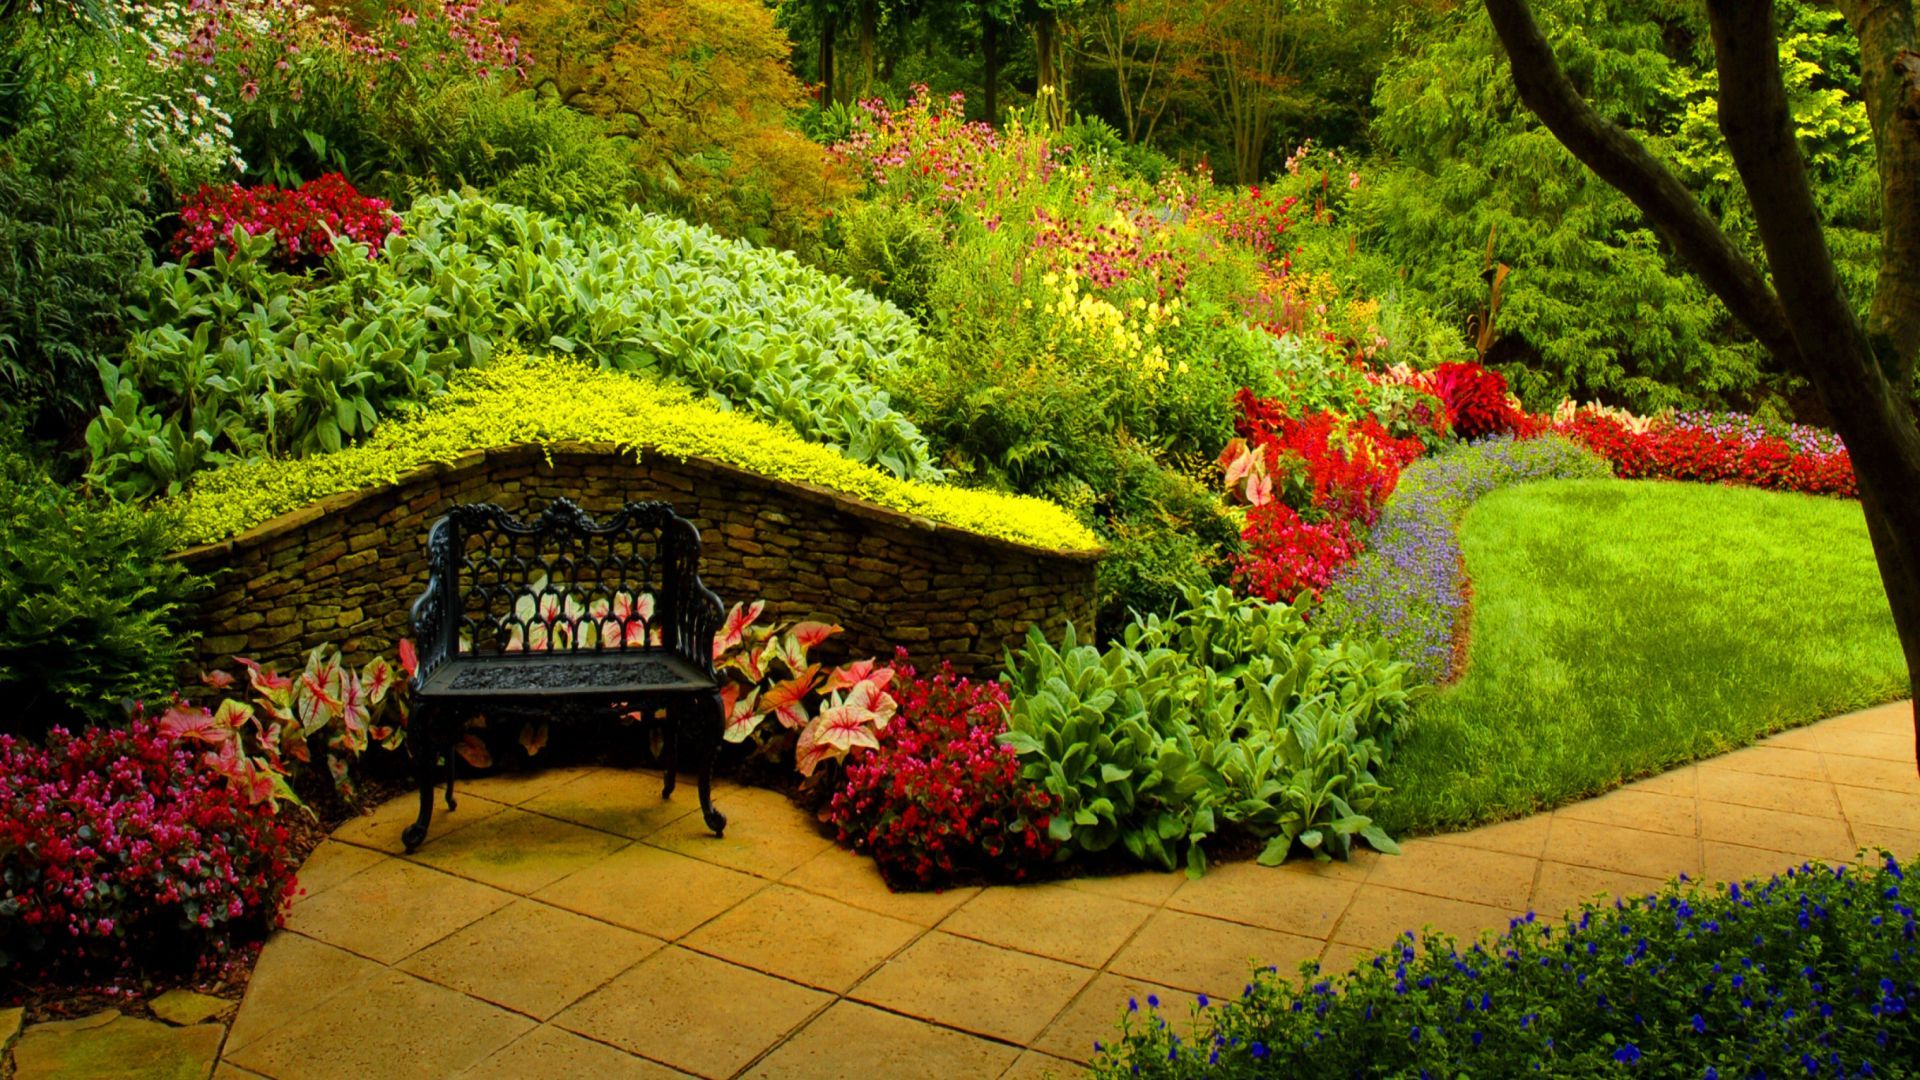 Park Bench and Beautiful Spring Flowers Nature View